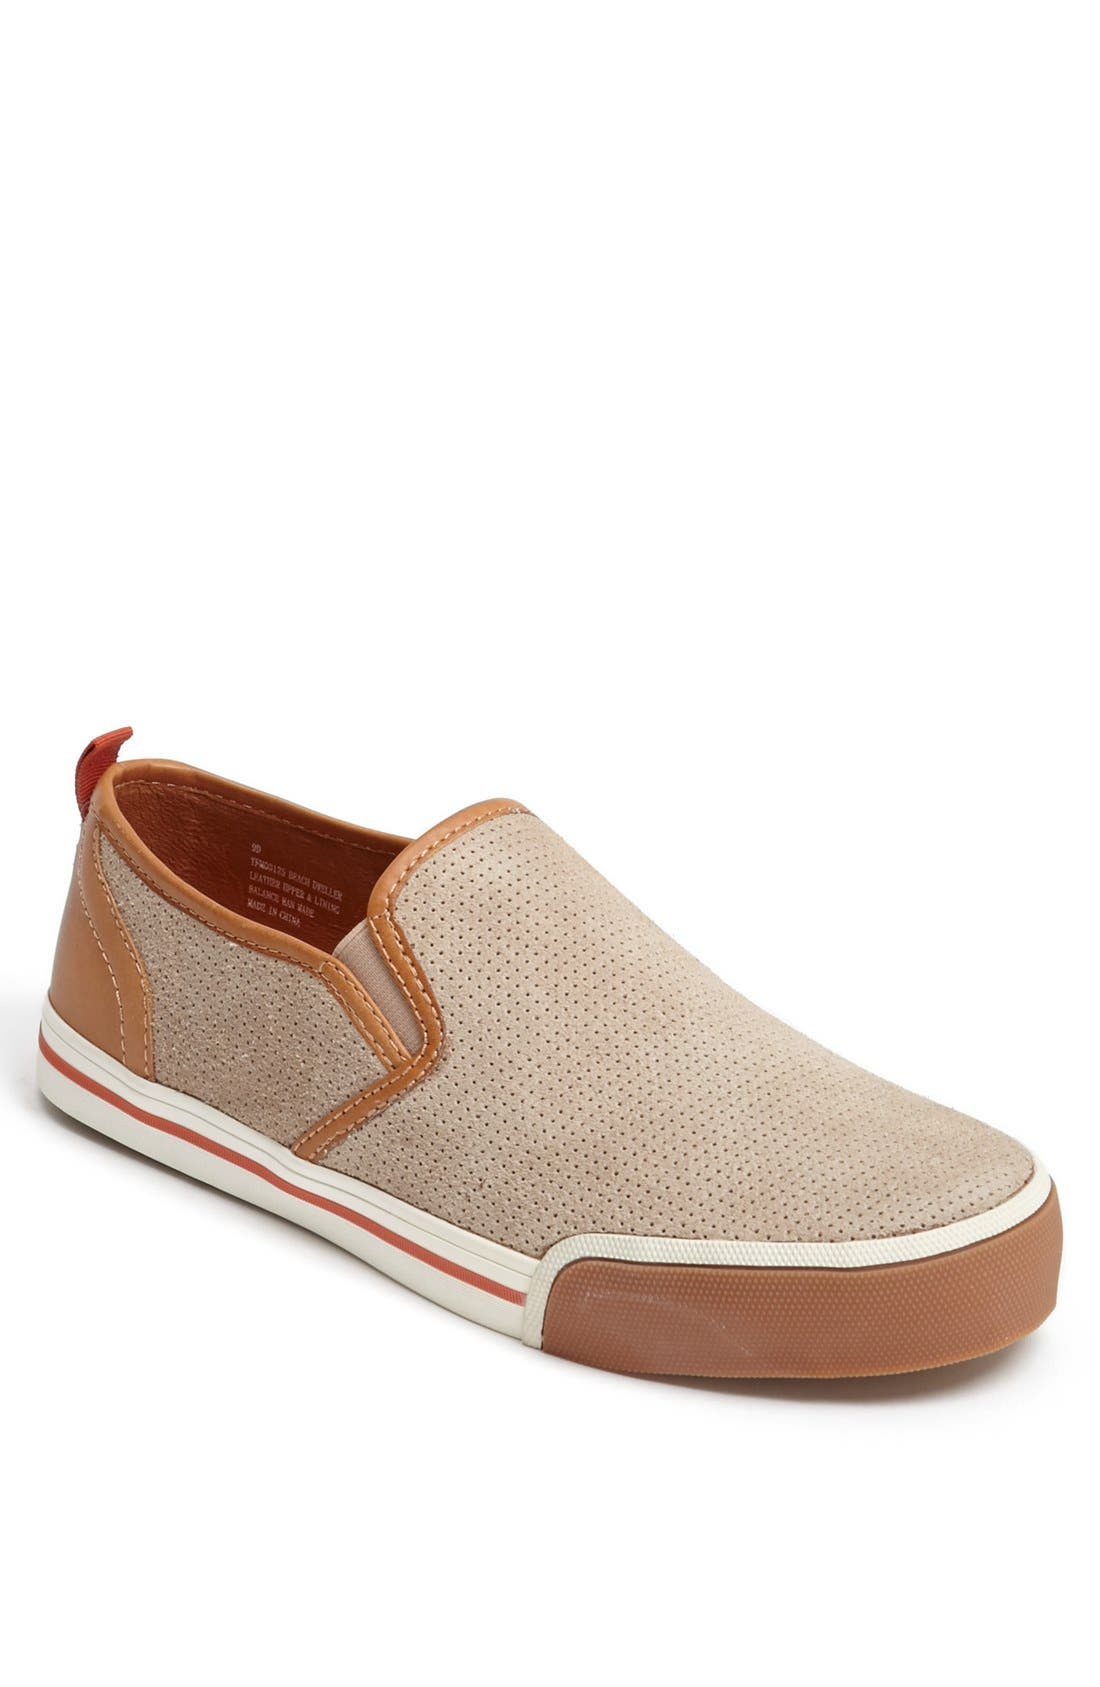 Main Image - Tommy Bahama 'Beach Dweller' Slip-On